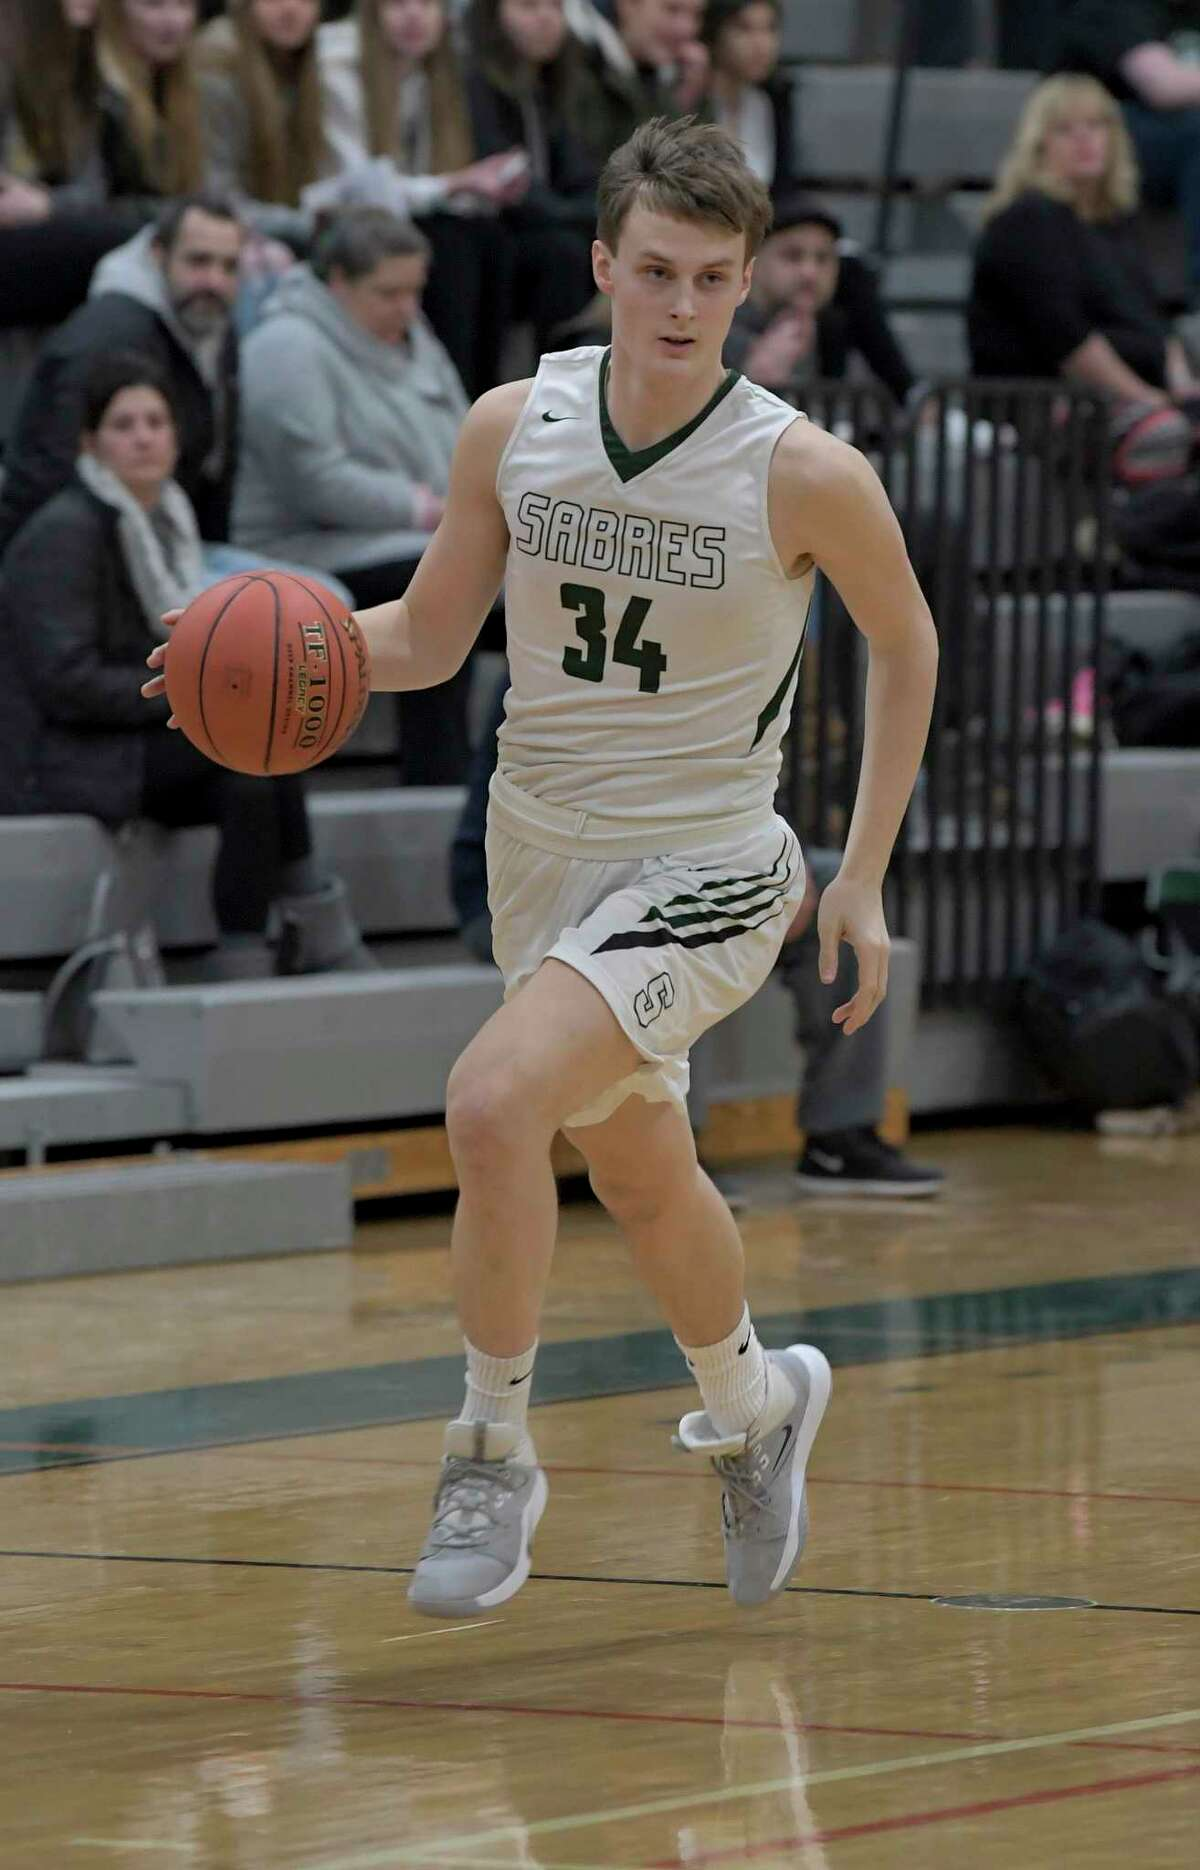 Schalmont's Shane O'Dell (34) moves the ball against Watervliet during the first half of a Section II boys' basketball game Friday, Dec. 20, 2019, in Rotterdam, N.Y. (Hans Pennink / Special to the Times Union) ORG XMIT: 122119_hsbb_HP103